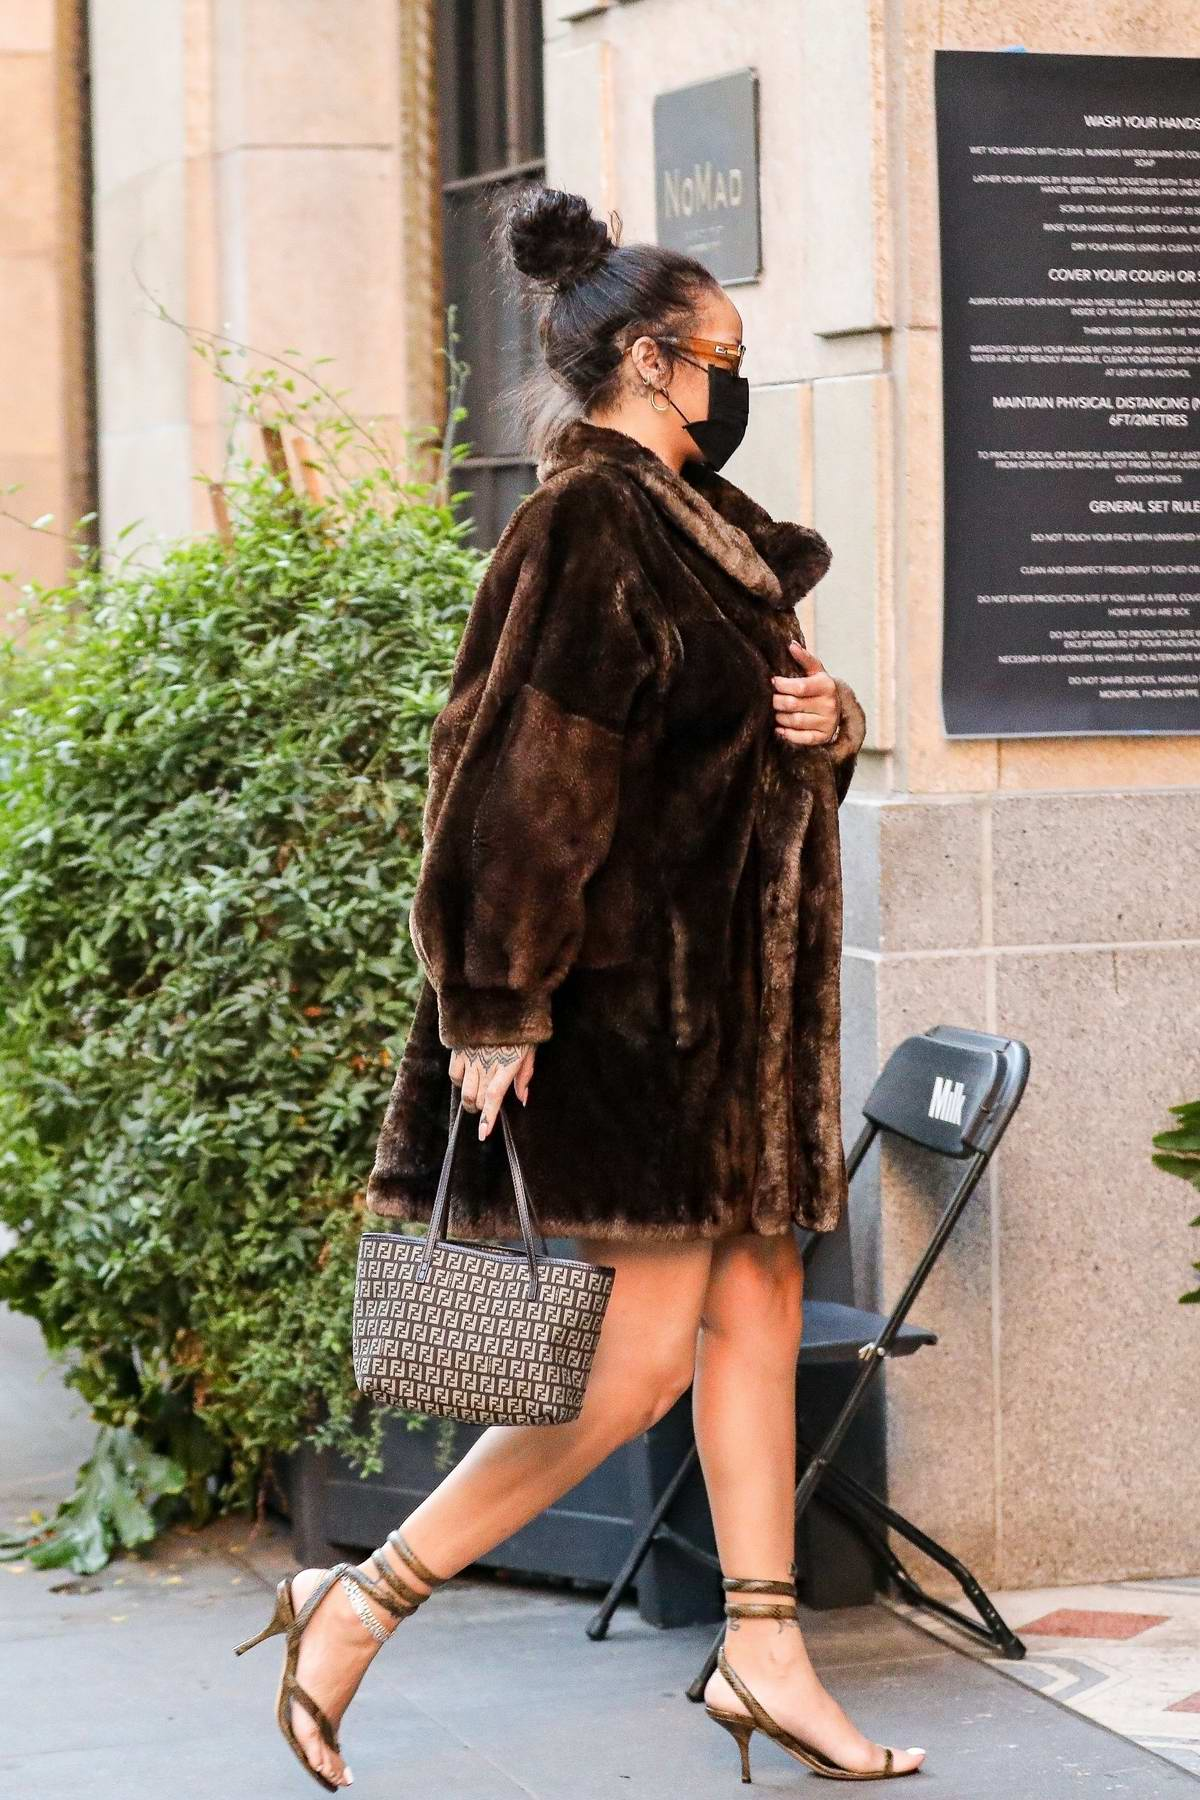 Rihanna puts on a stylish display in a fur coat as she arrives at NoMad Sky Bar in Los Angeles